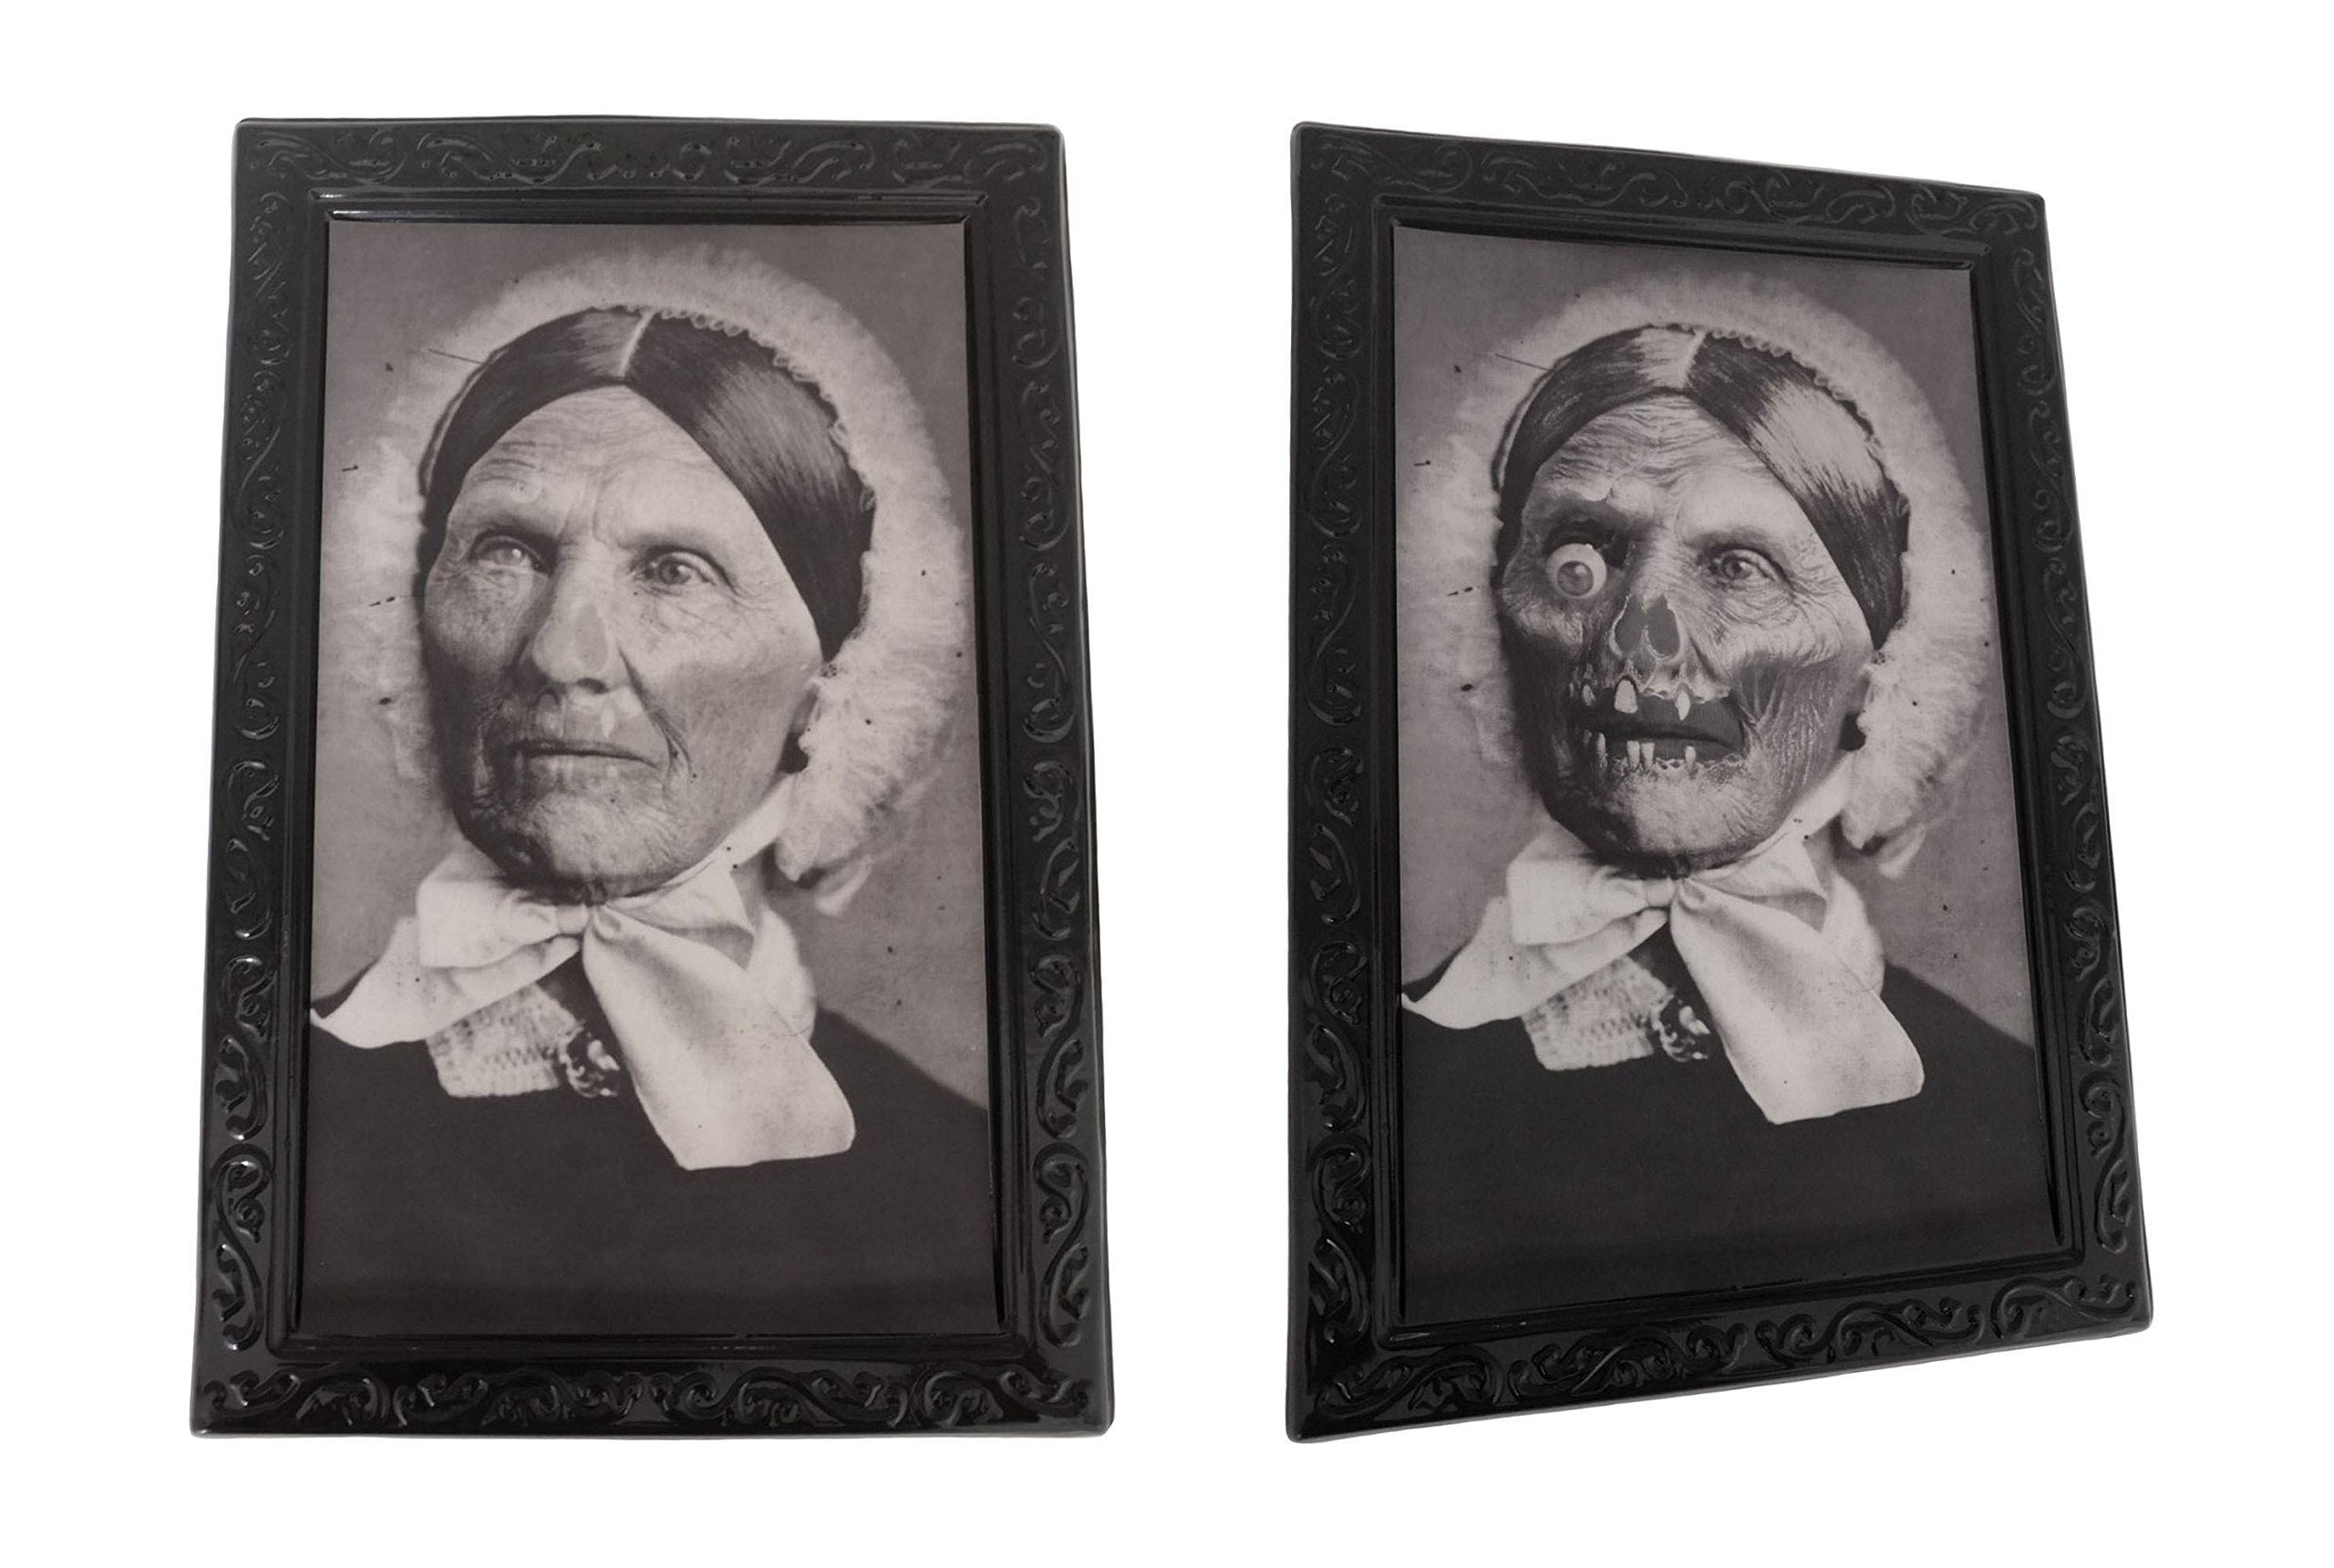 Halloween Lenticular 3D Changing Face Moving Picture Frame Horror Portrait Lady Gentleman Little Girl Monster Haunted Spooky Decorations for Halloween Theme Party Home Decor (Maid)